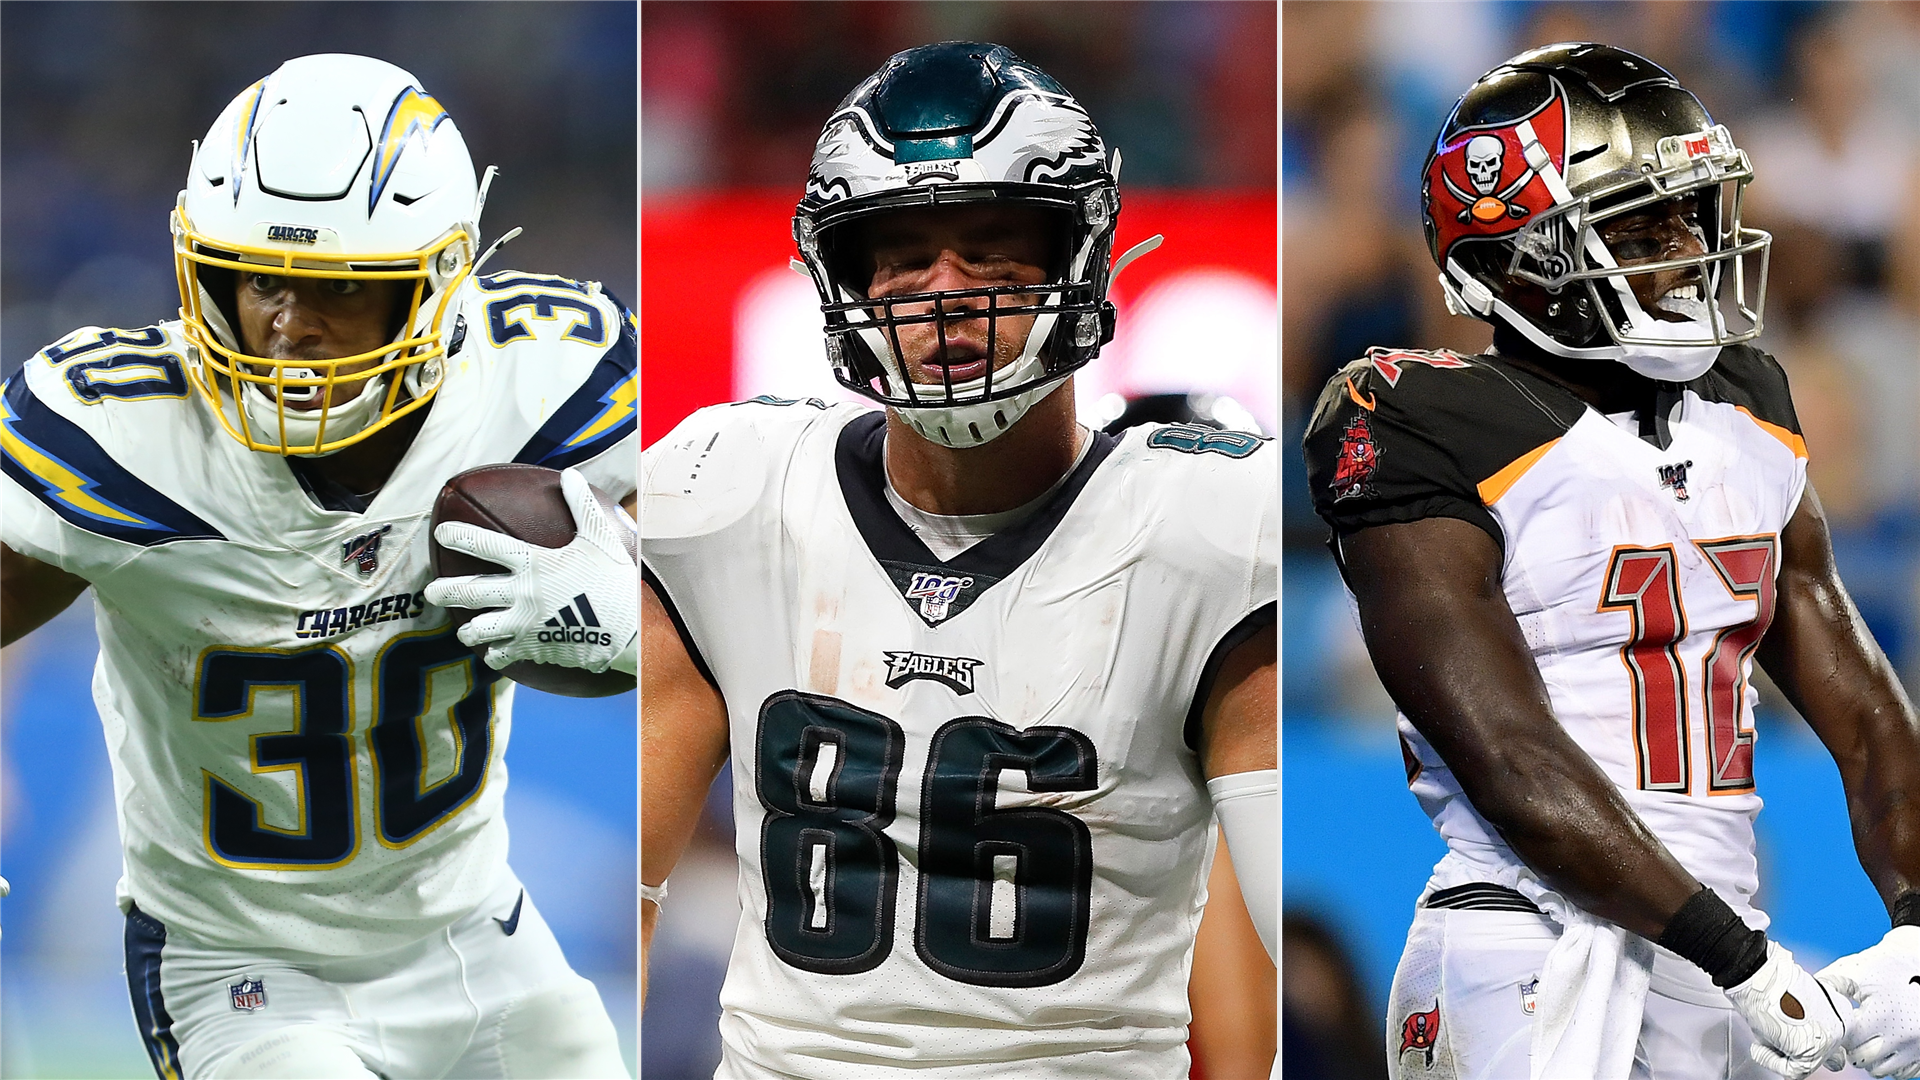 NFL Week 3 player props & fantasy football sleepers to target